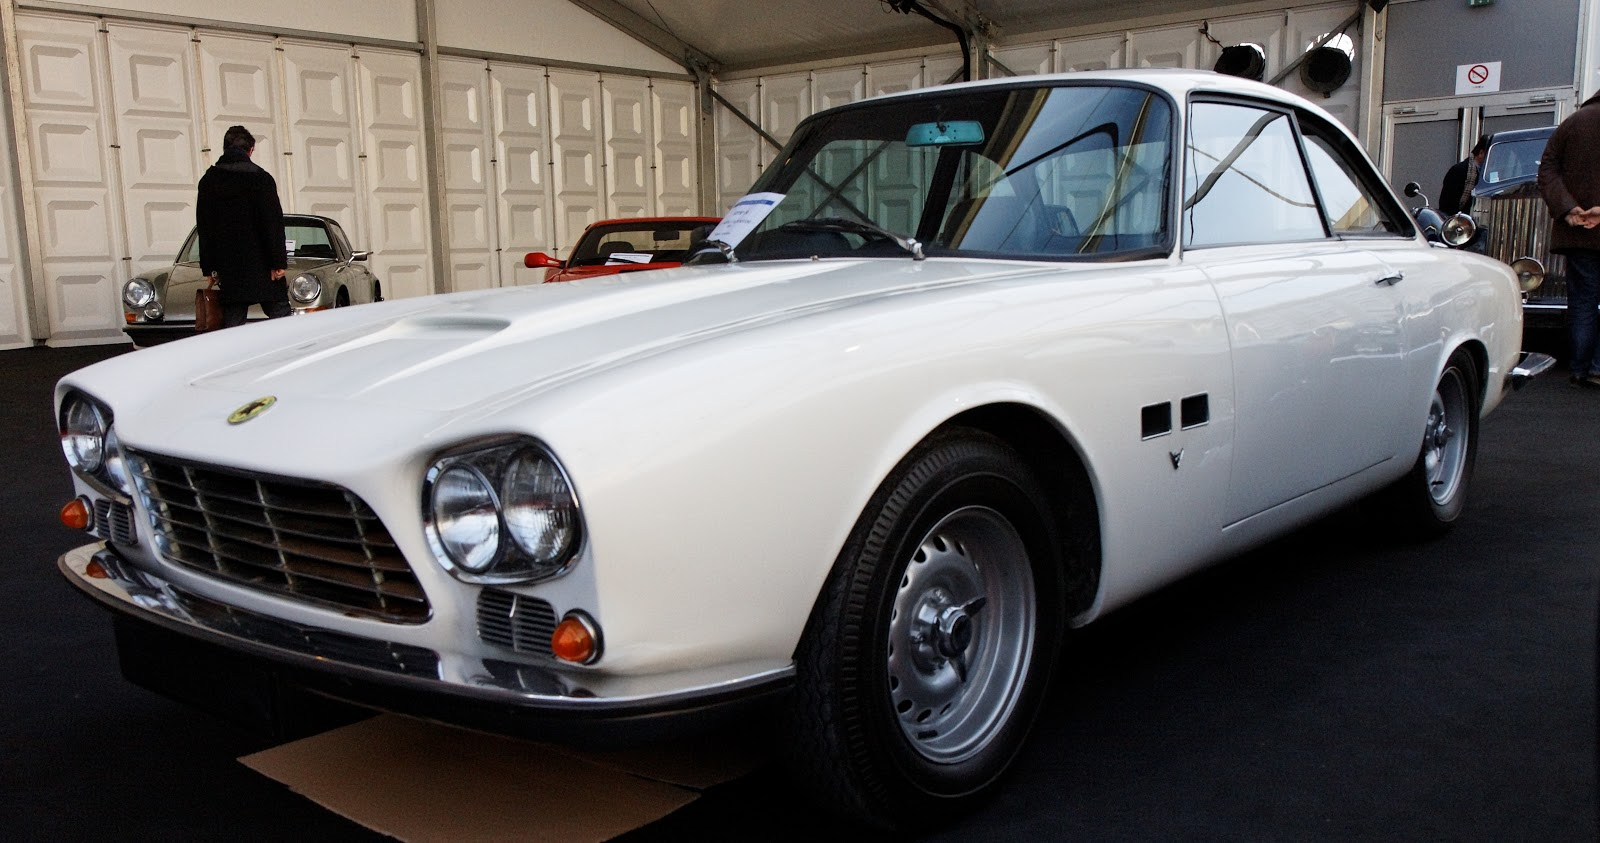 This sounds like the Iso Rivolta GT but it is the Gordon-Keeble GK1.